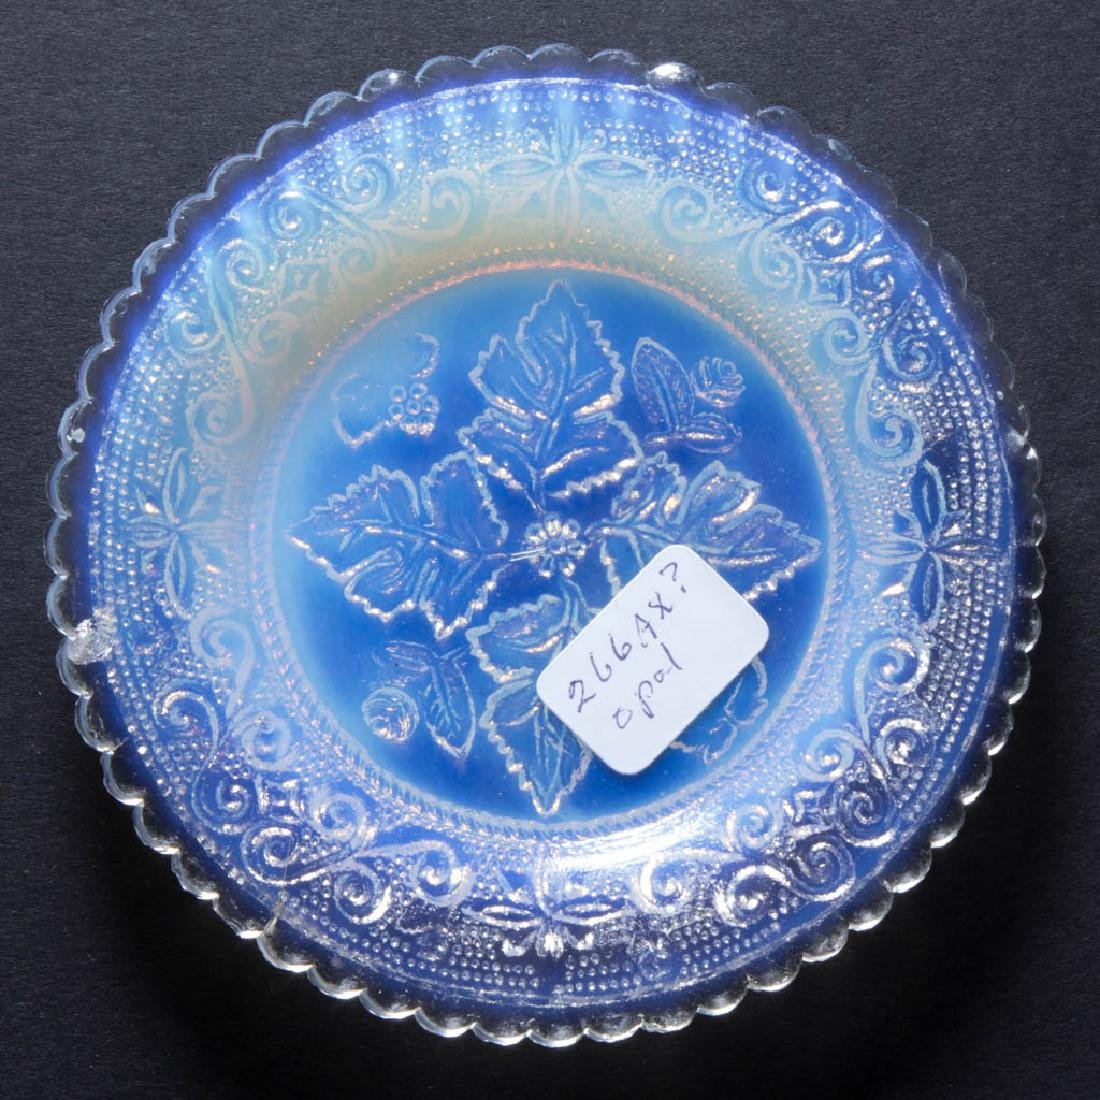 LEE/ROSE NO. 266-A-X CUP PLATE